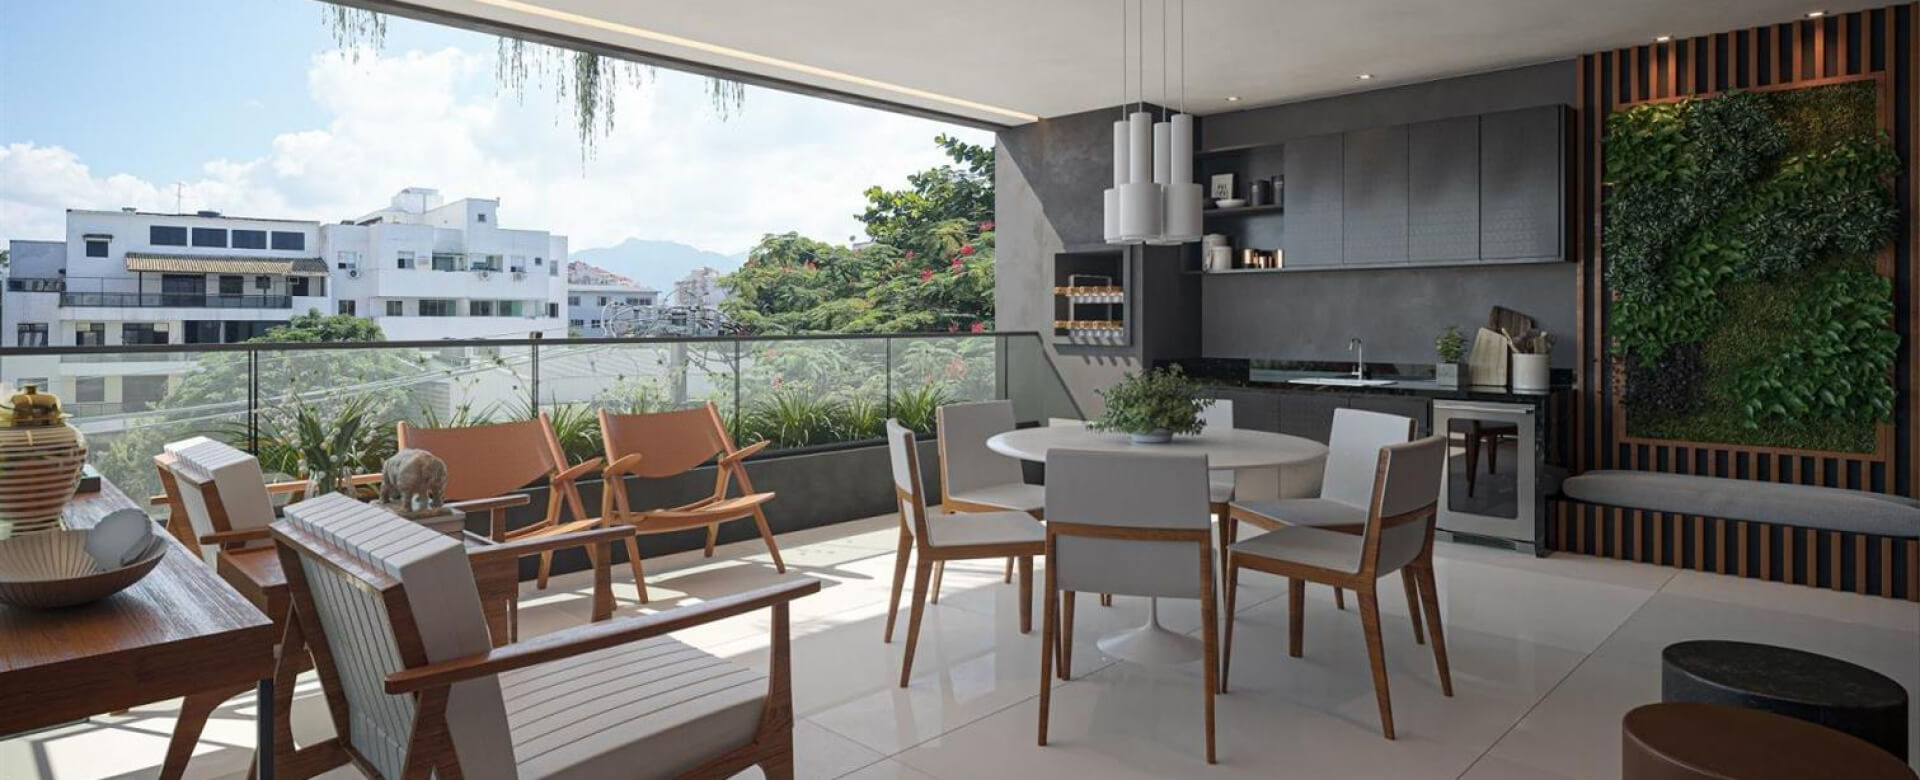 Residencial Assis, foto 1